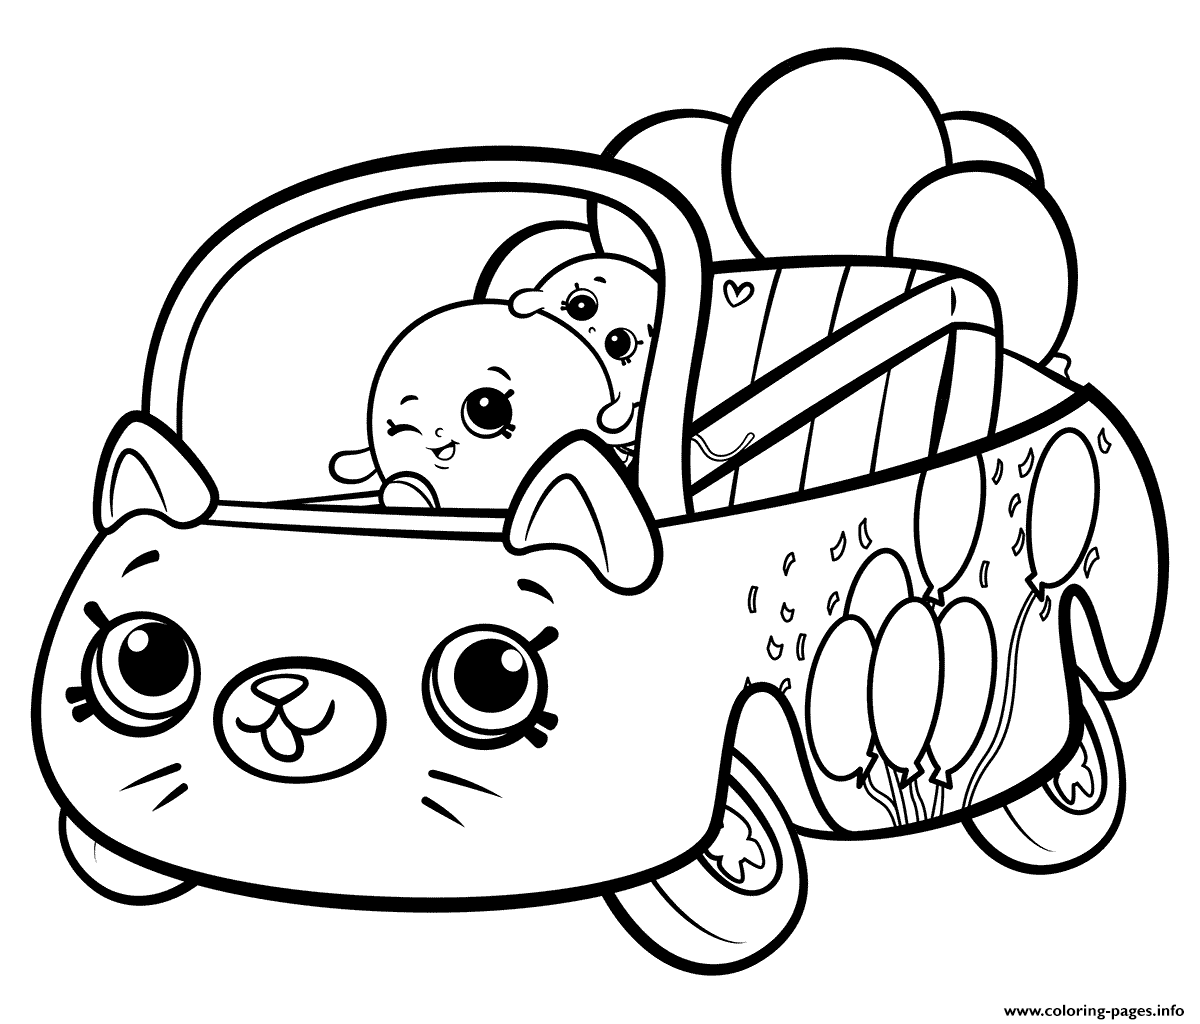 Shopkins Cutie Cars Bumper Balloons Coloring Pages Printable